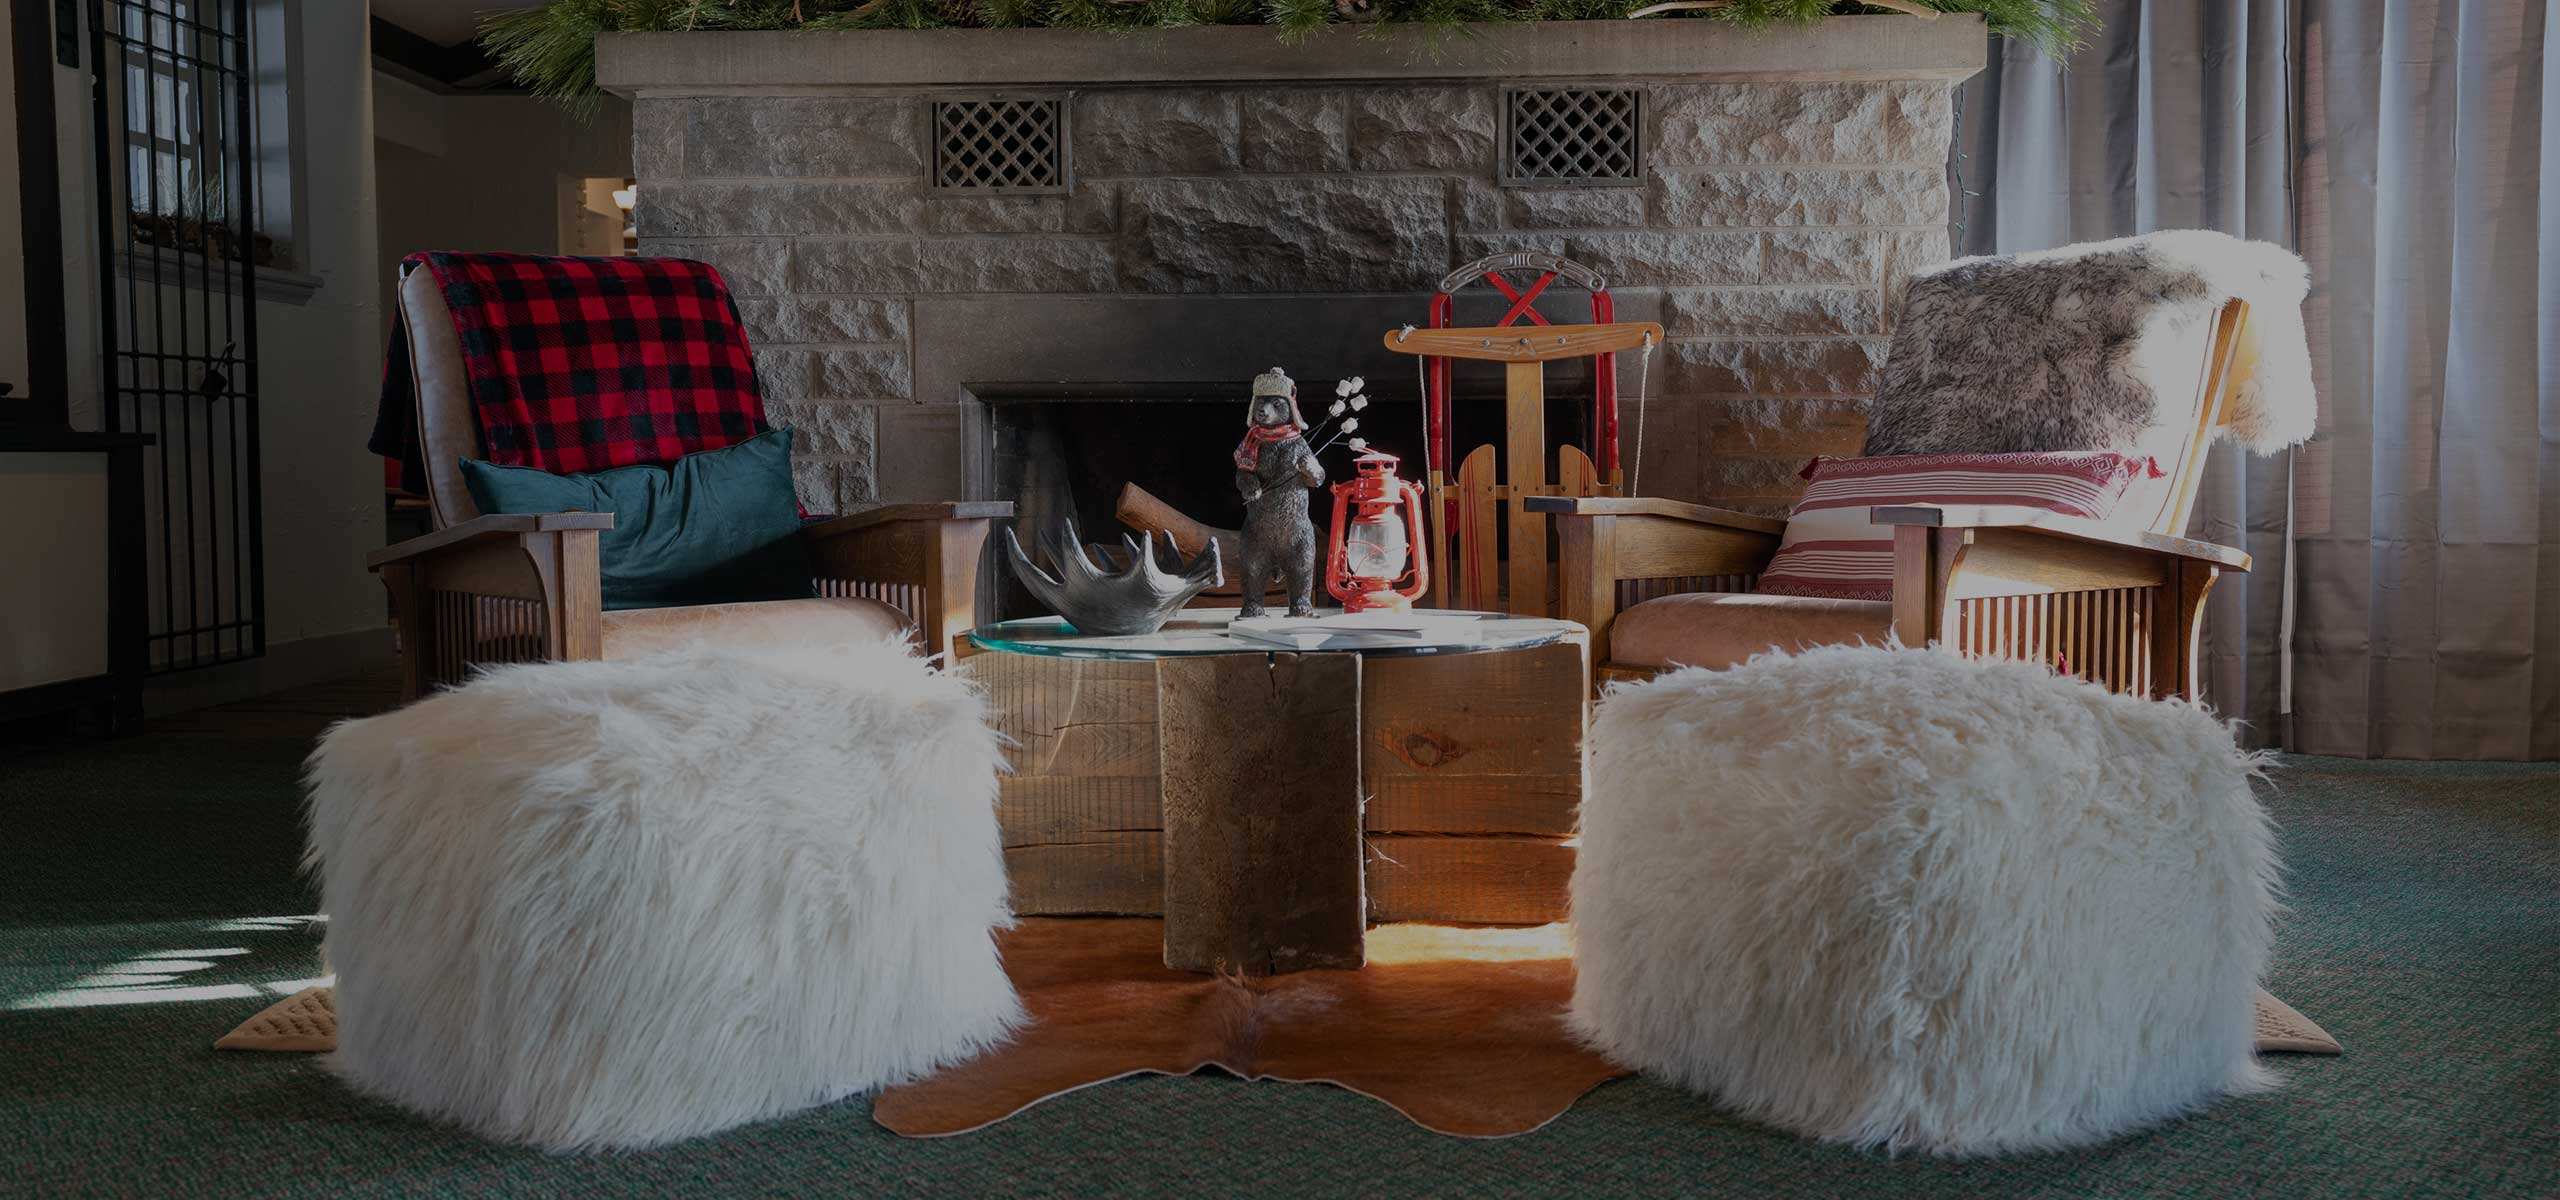 Experience Winter in Niagara Parks with The Great Canadian Winter Lodge